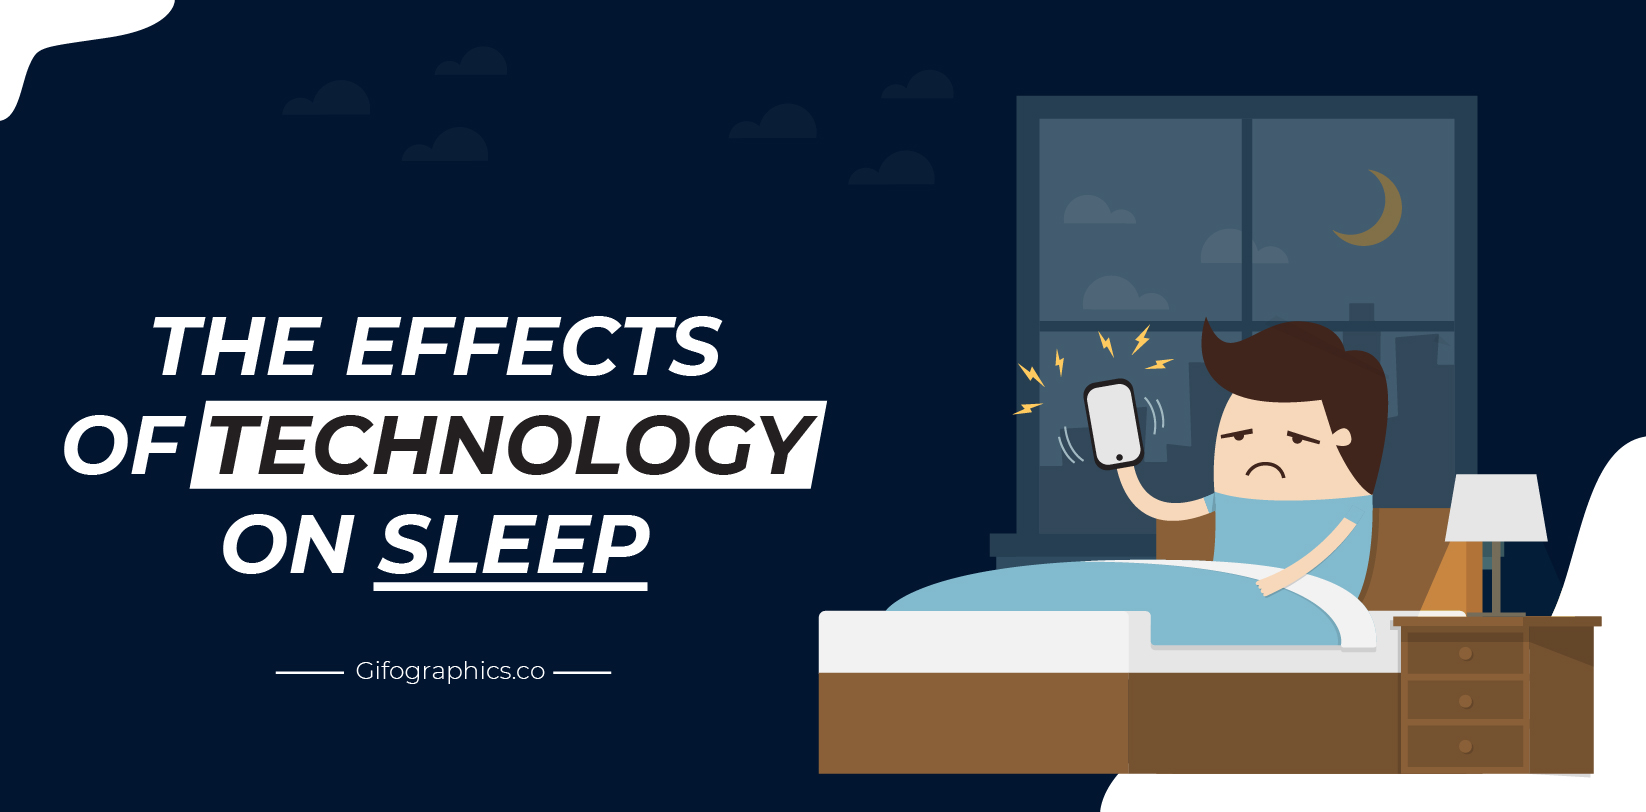 The Effects of Technology on Sleep